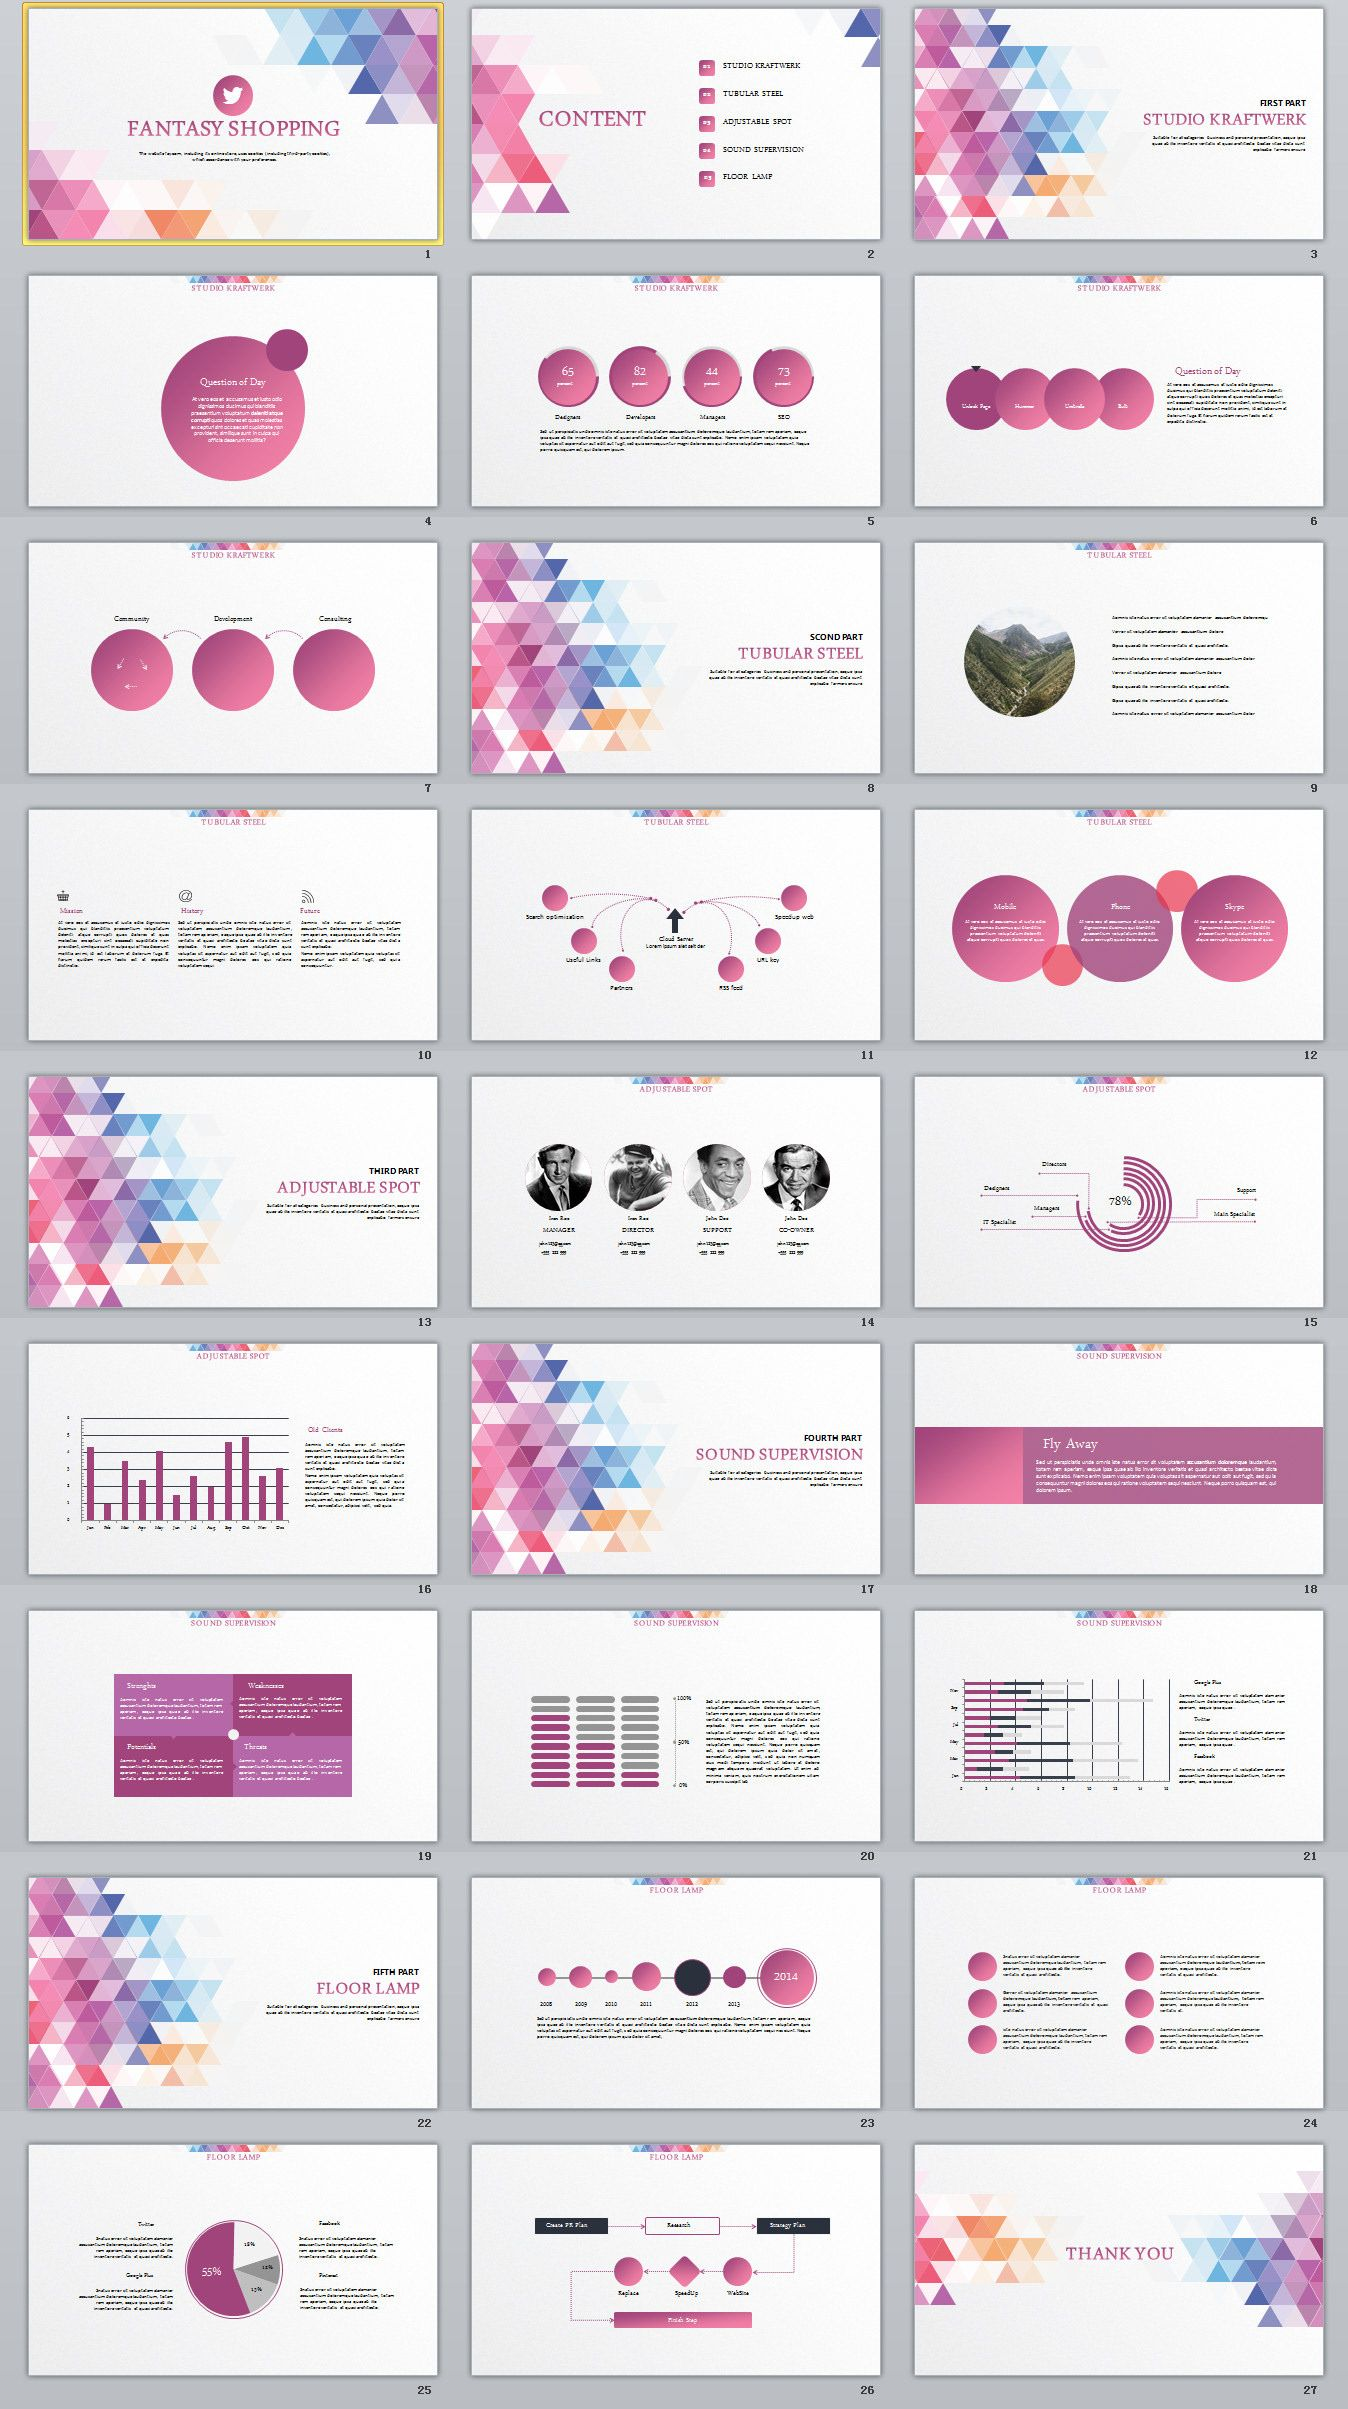 27 red fantasy charts report powerpoint template on behance